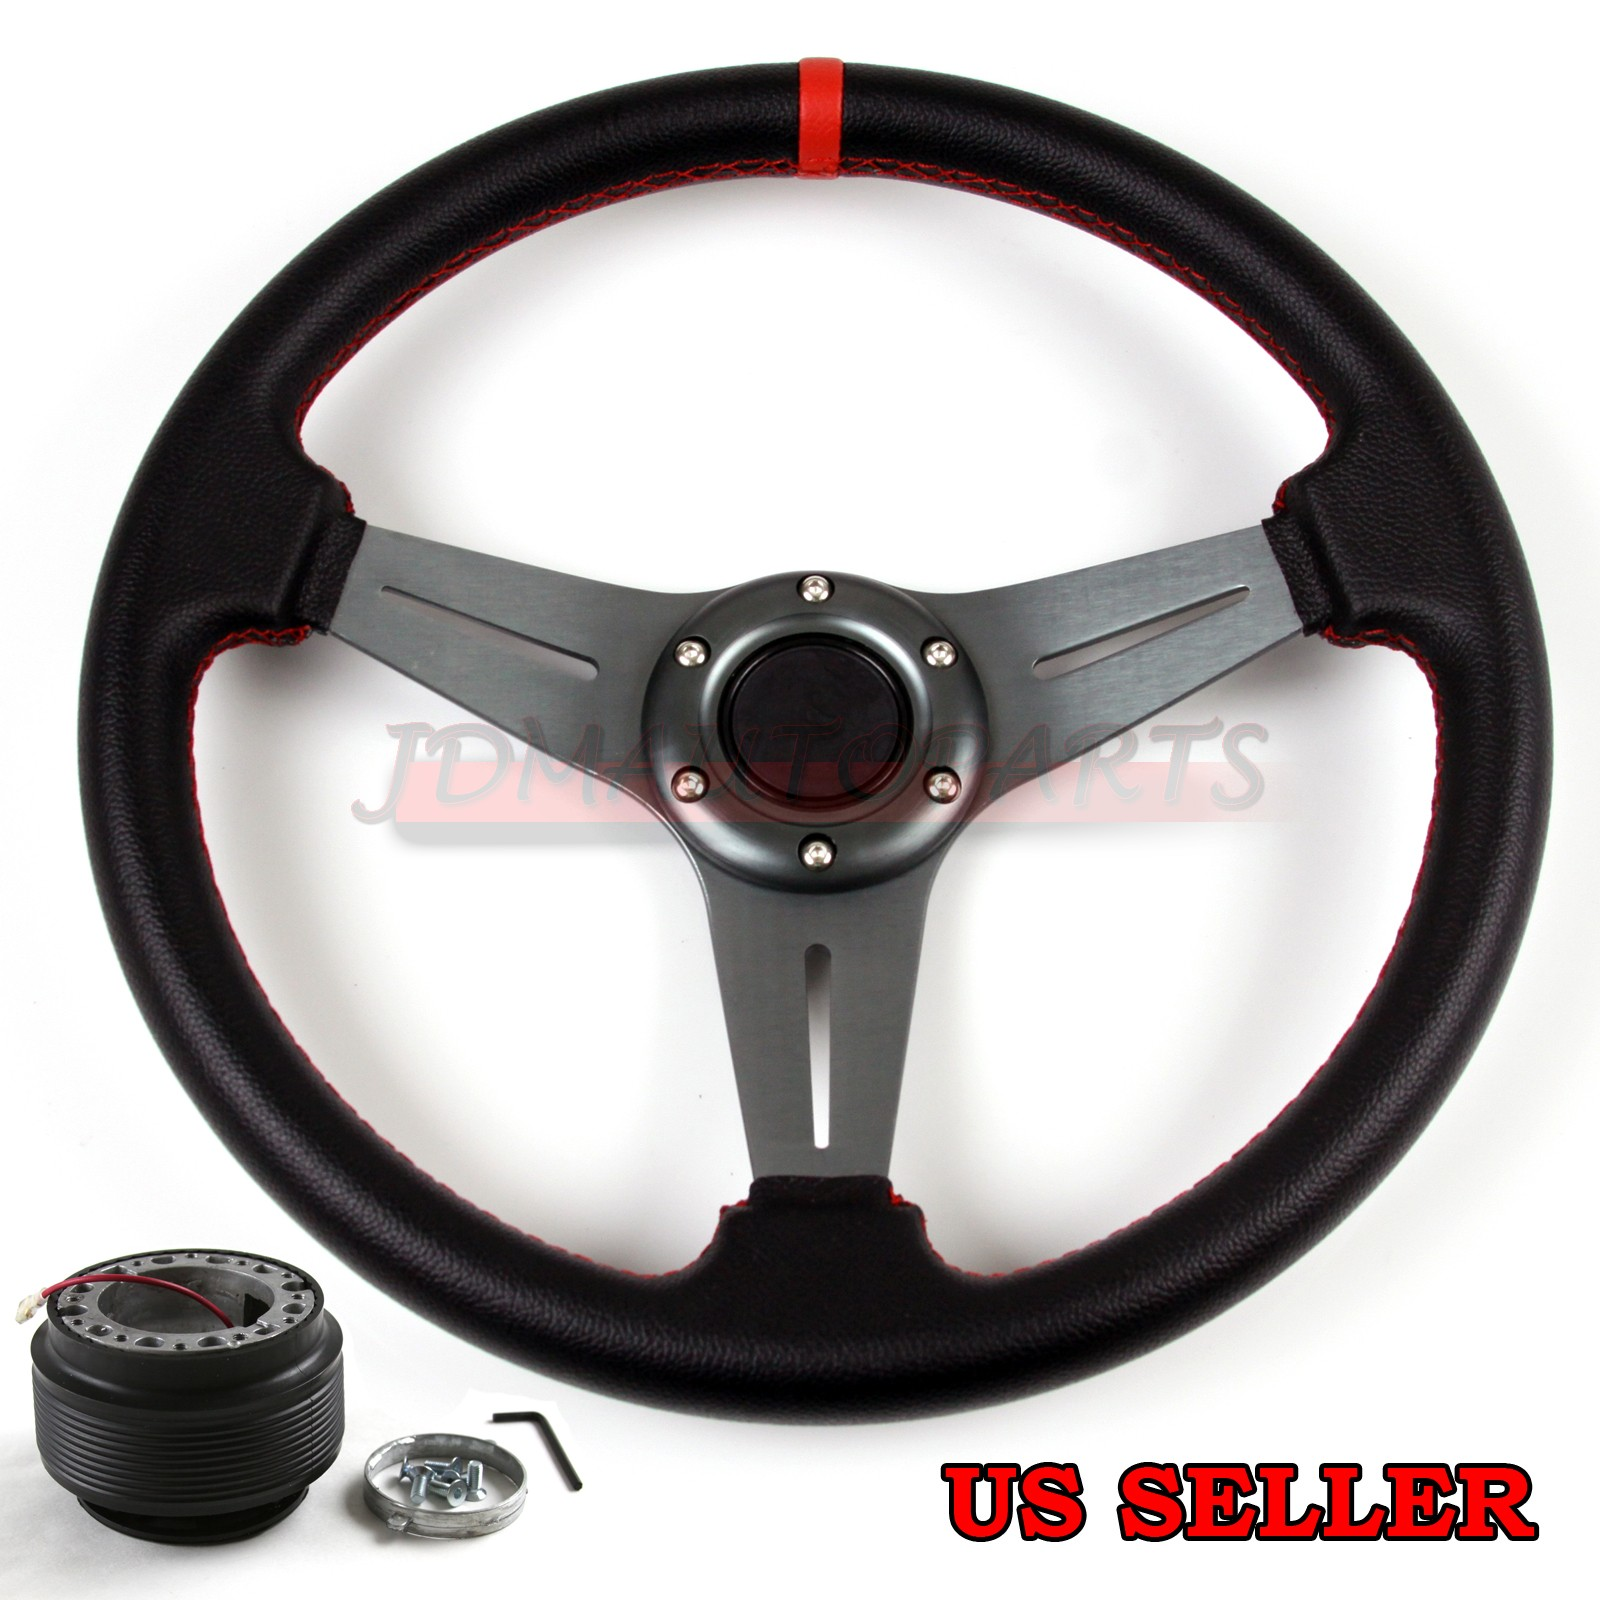 FOR ACURA RSX DC MM RED STITCH GUNMETAL LEATHER STEERING - Acura rsx steering wheel